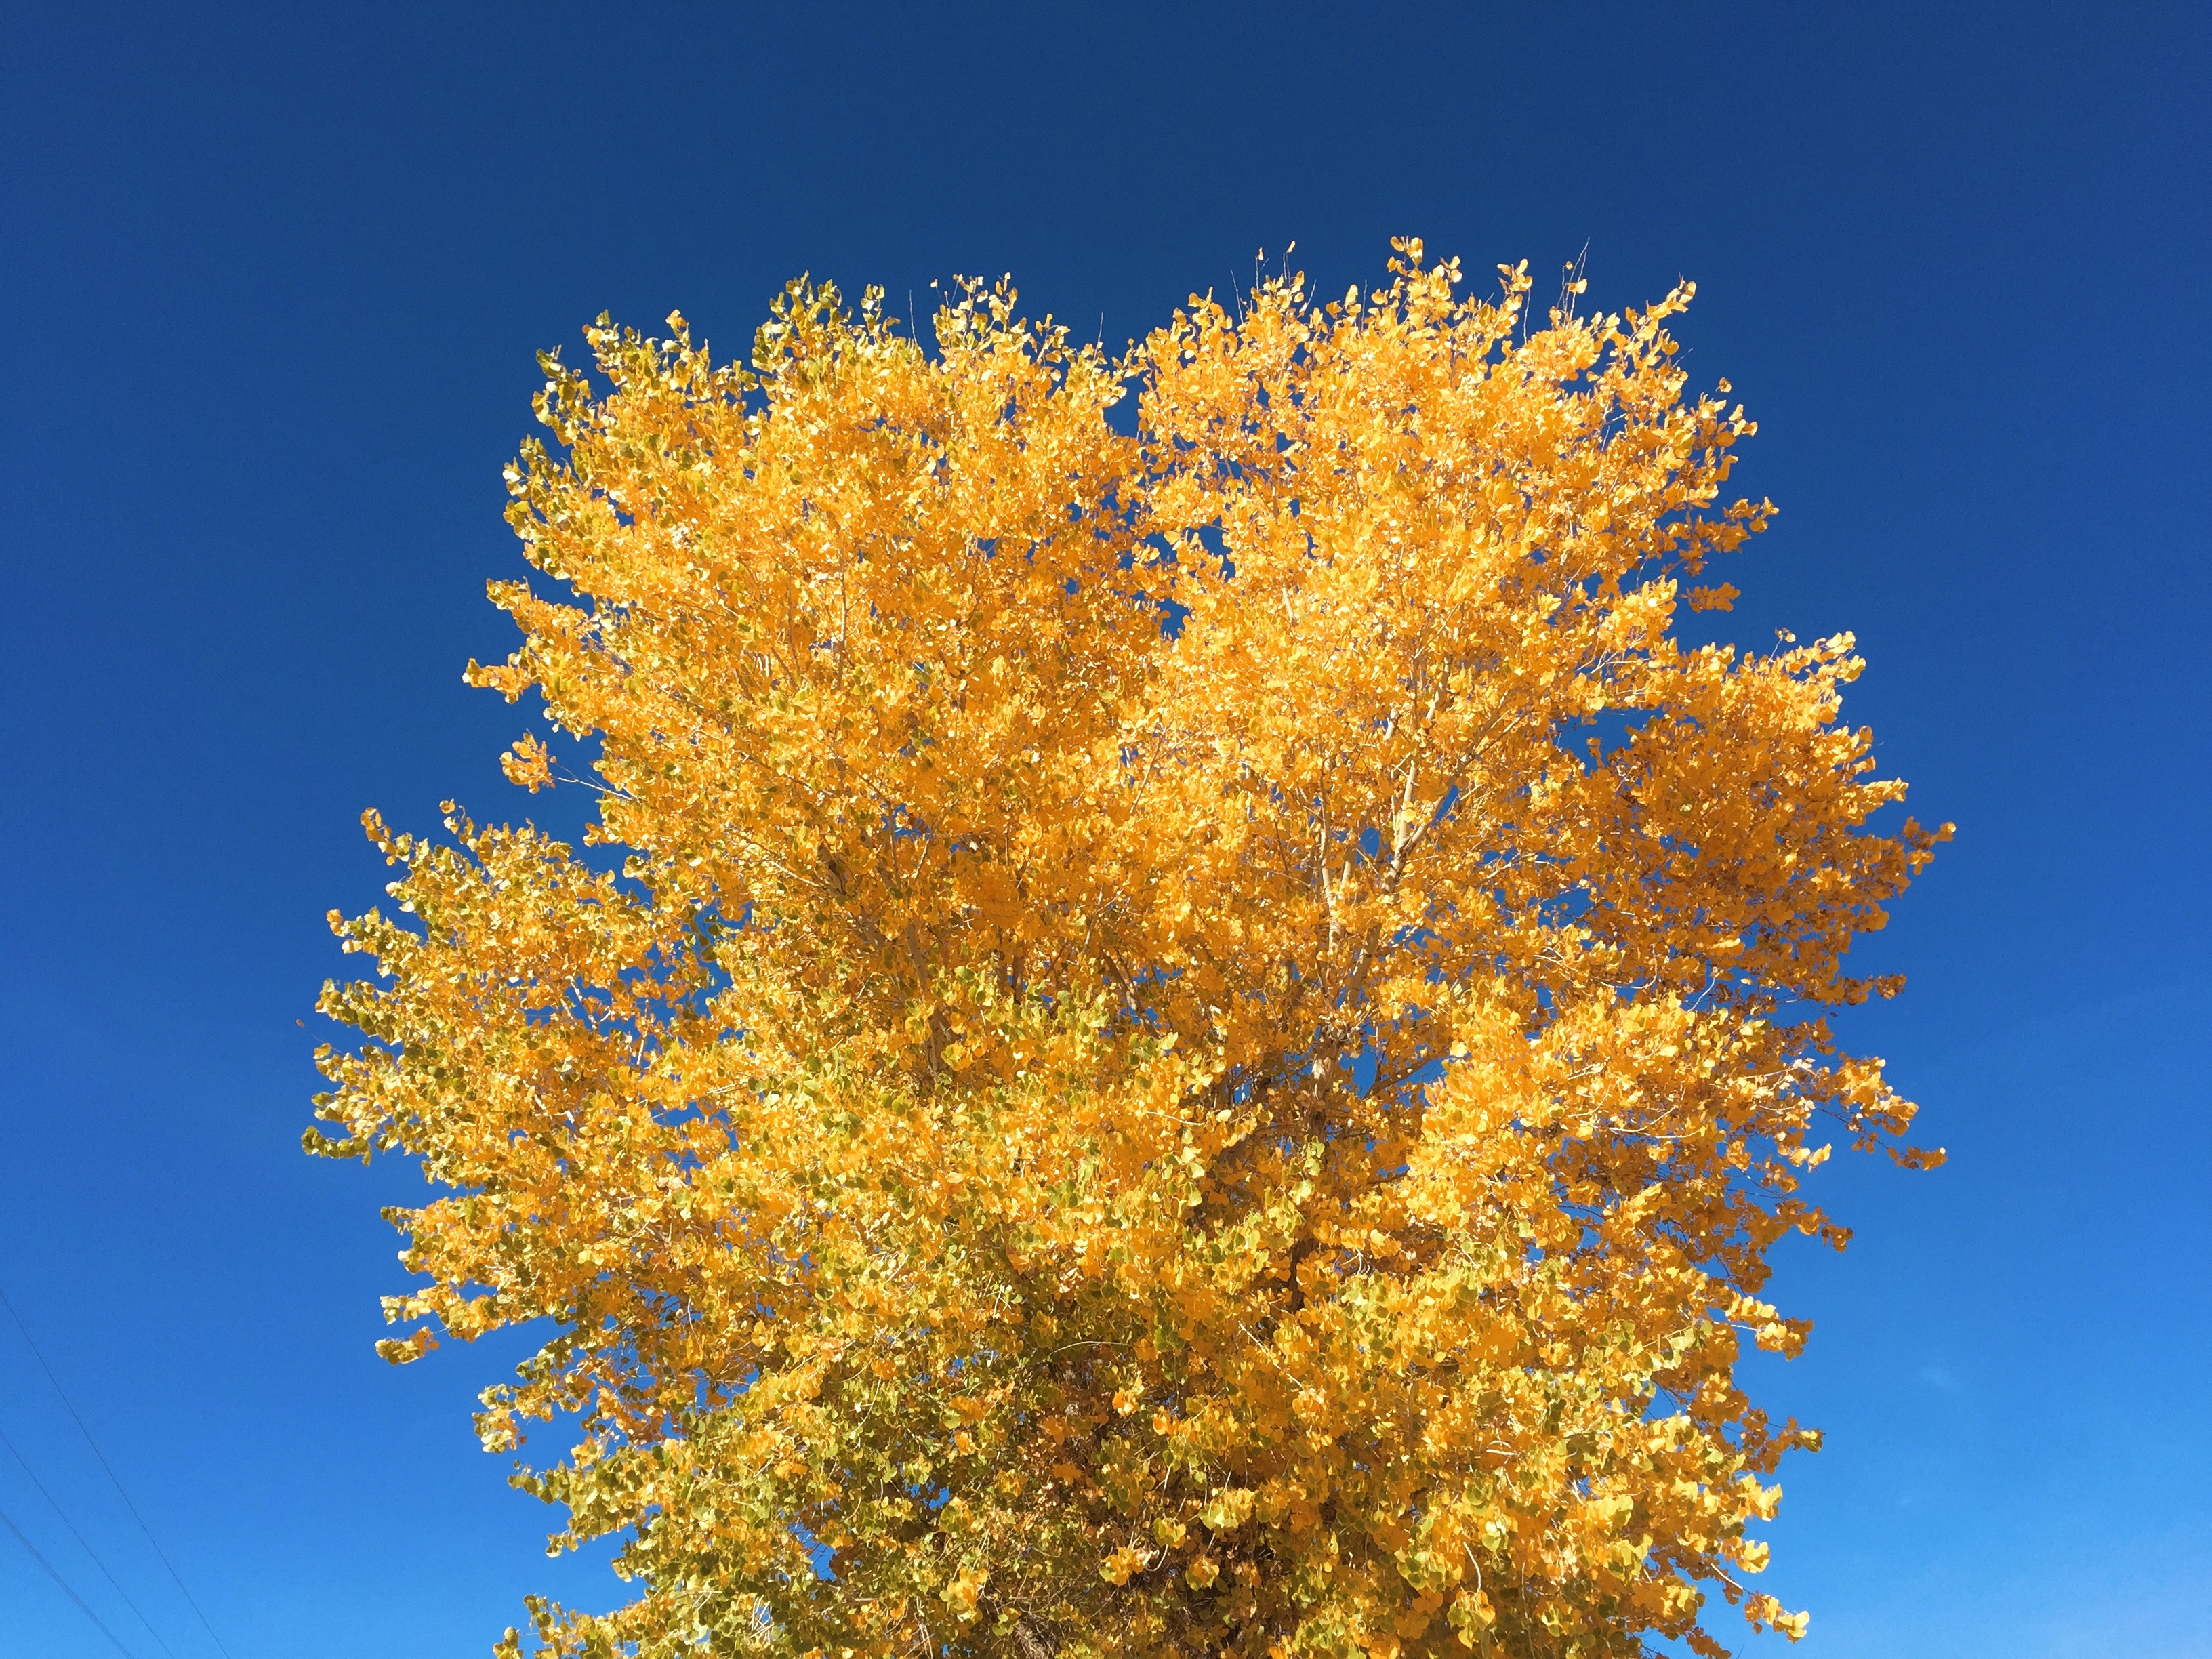 A photo of a tree with yellow leaves. This photo was taken on Navajo Nation.